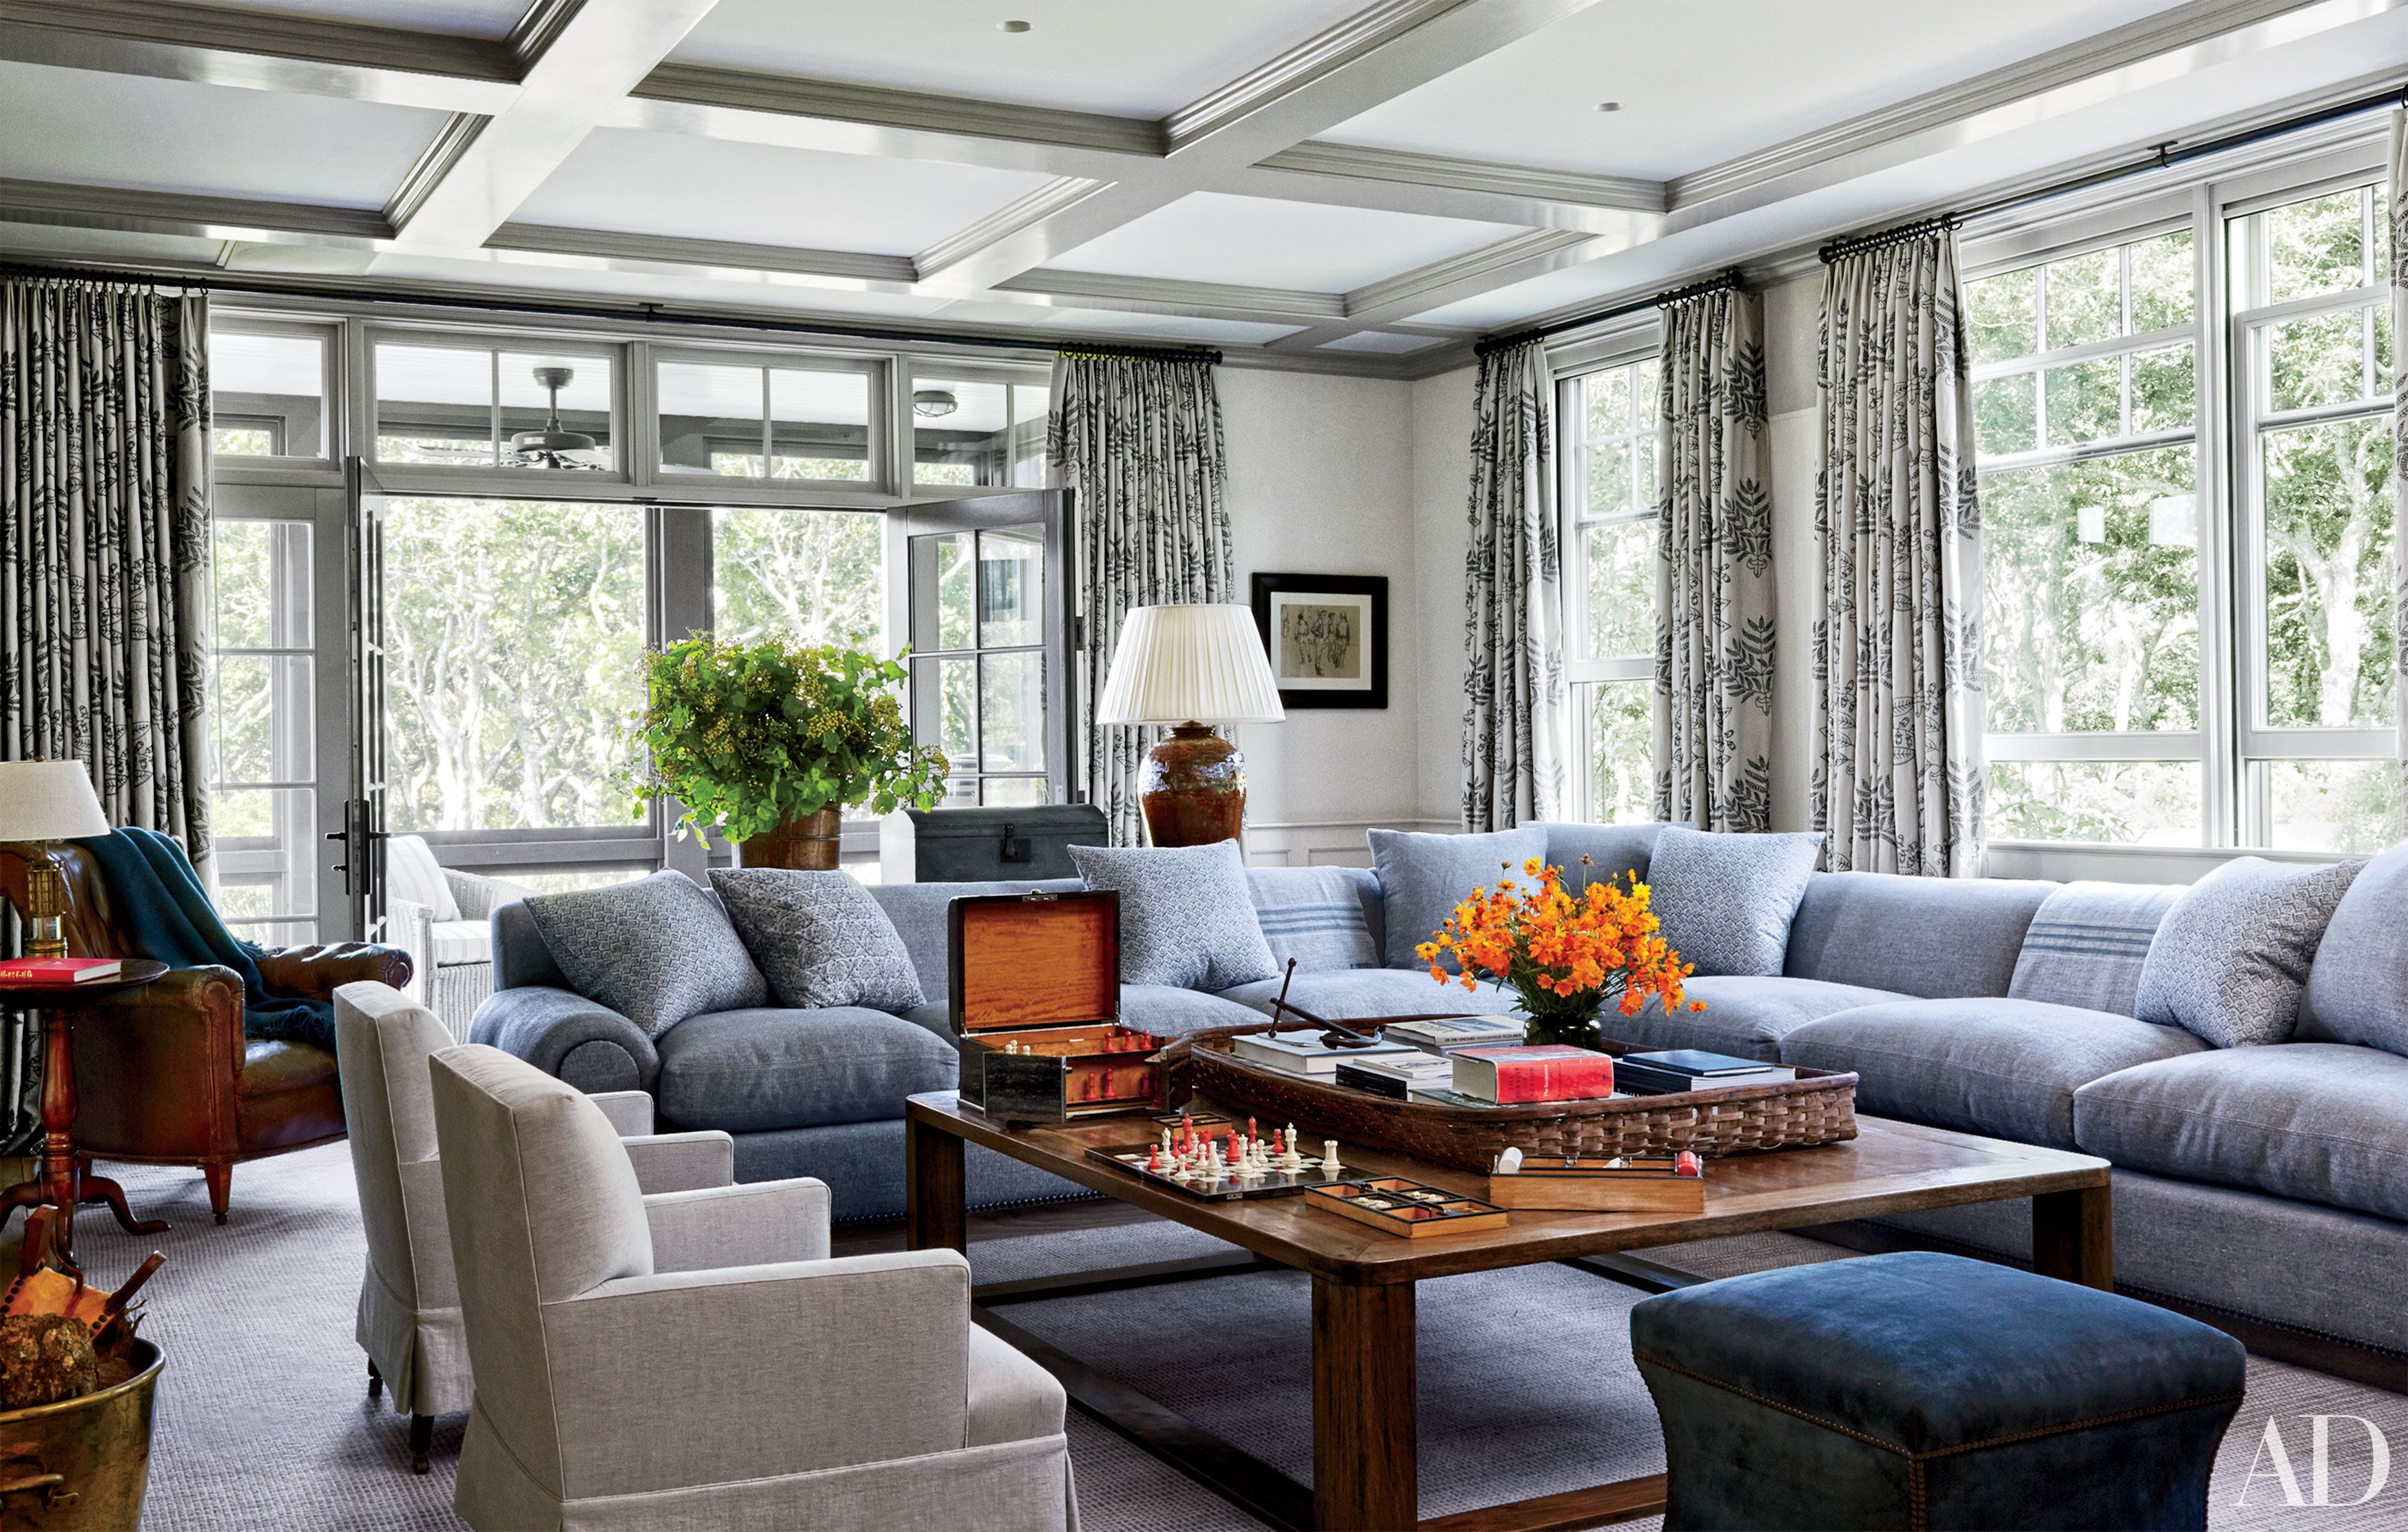 Best 21 Sectional Sofas That Make The Room Rooms Home Decor 400 x 300